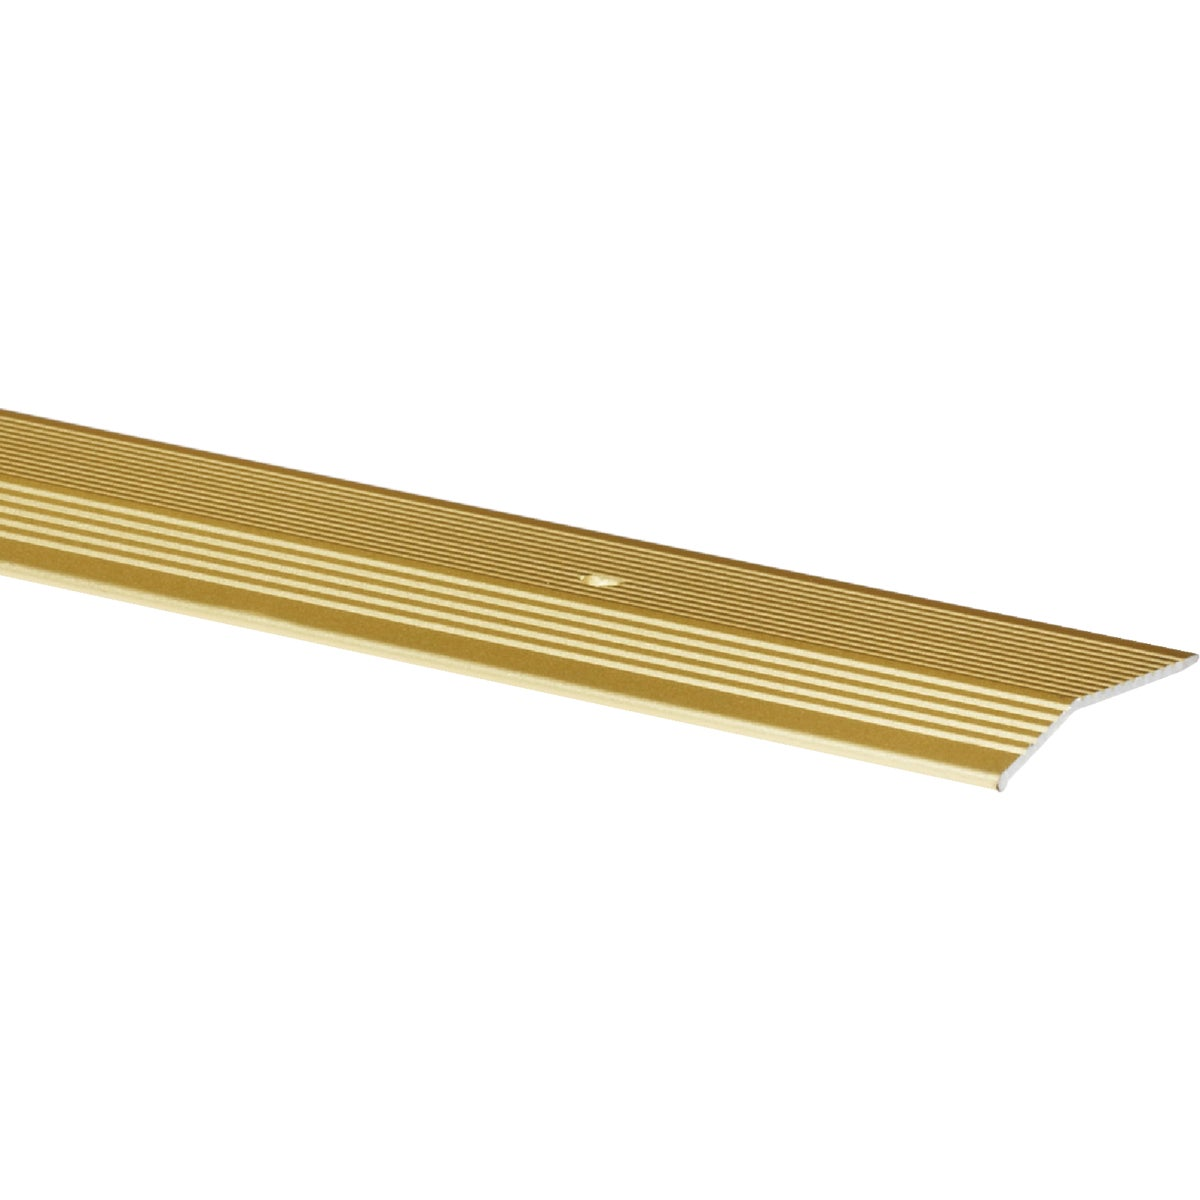 "2""X6' GOLD CARPET BAR - H1591FB6DI by Thermwell Prods Co"